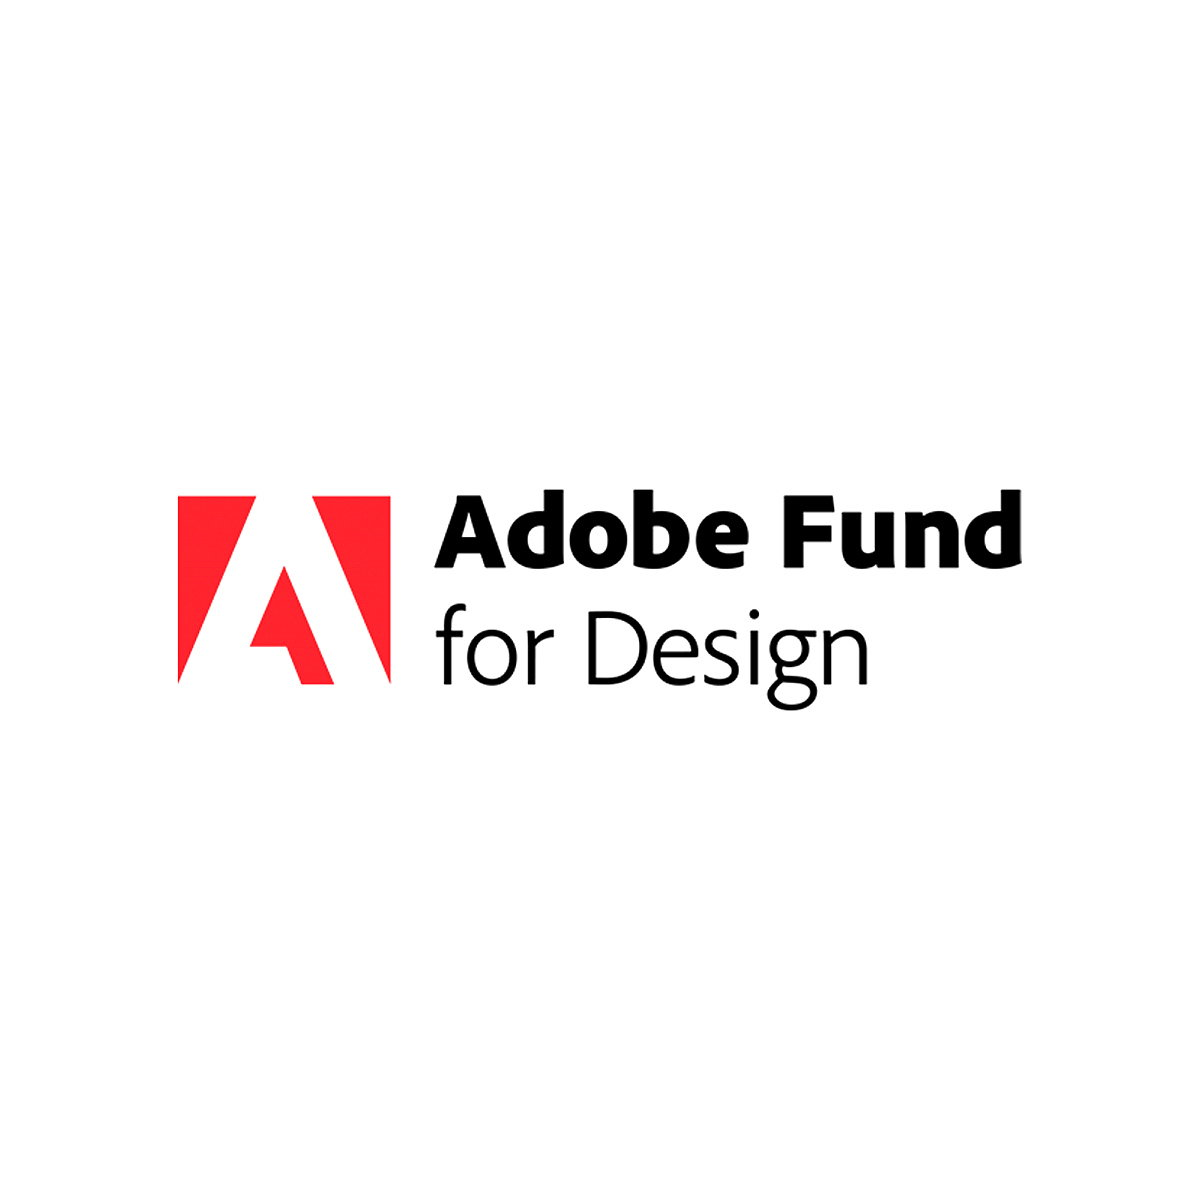 Adobe Launches First Creative Cloud Accelerator to Inspire UX Innovation